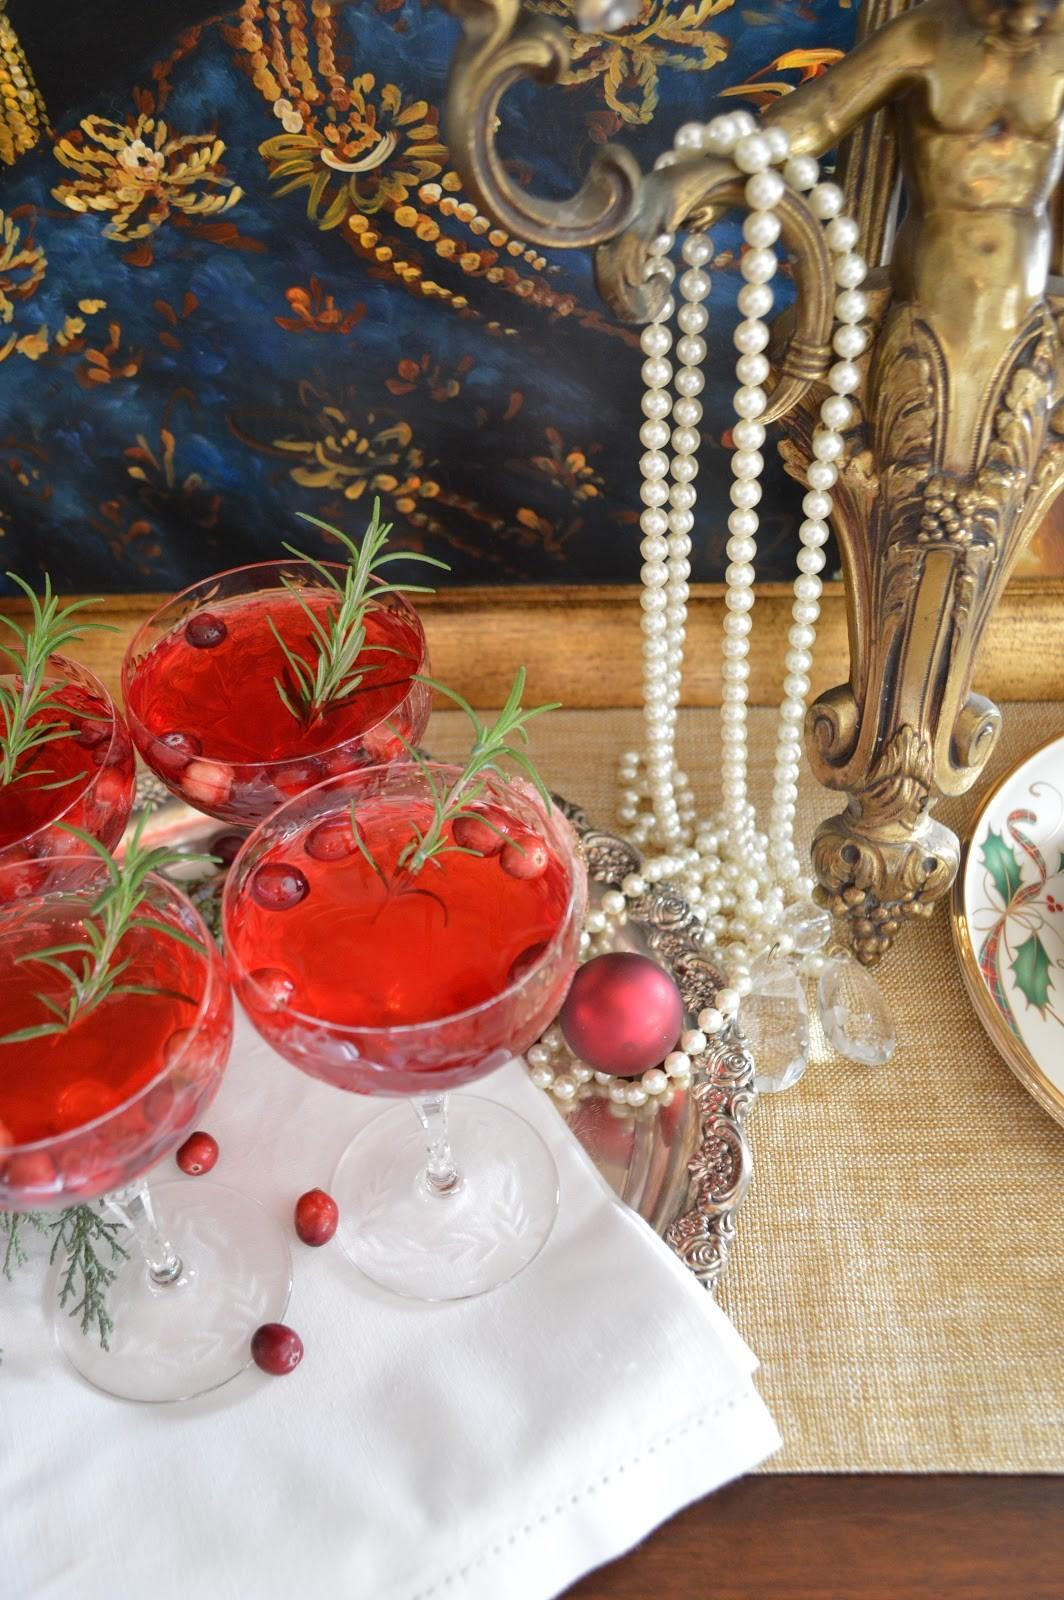 Rosemary Infused Orange Cranberry Holiday Cocktail